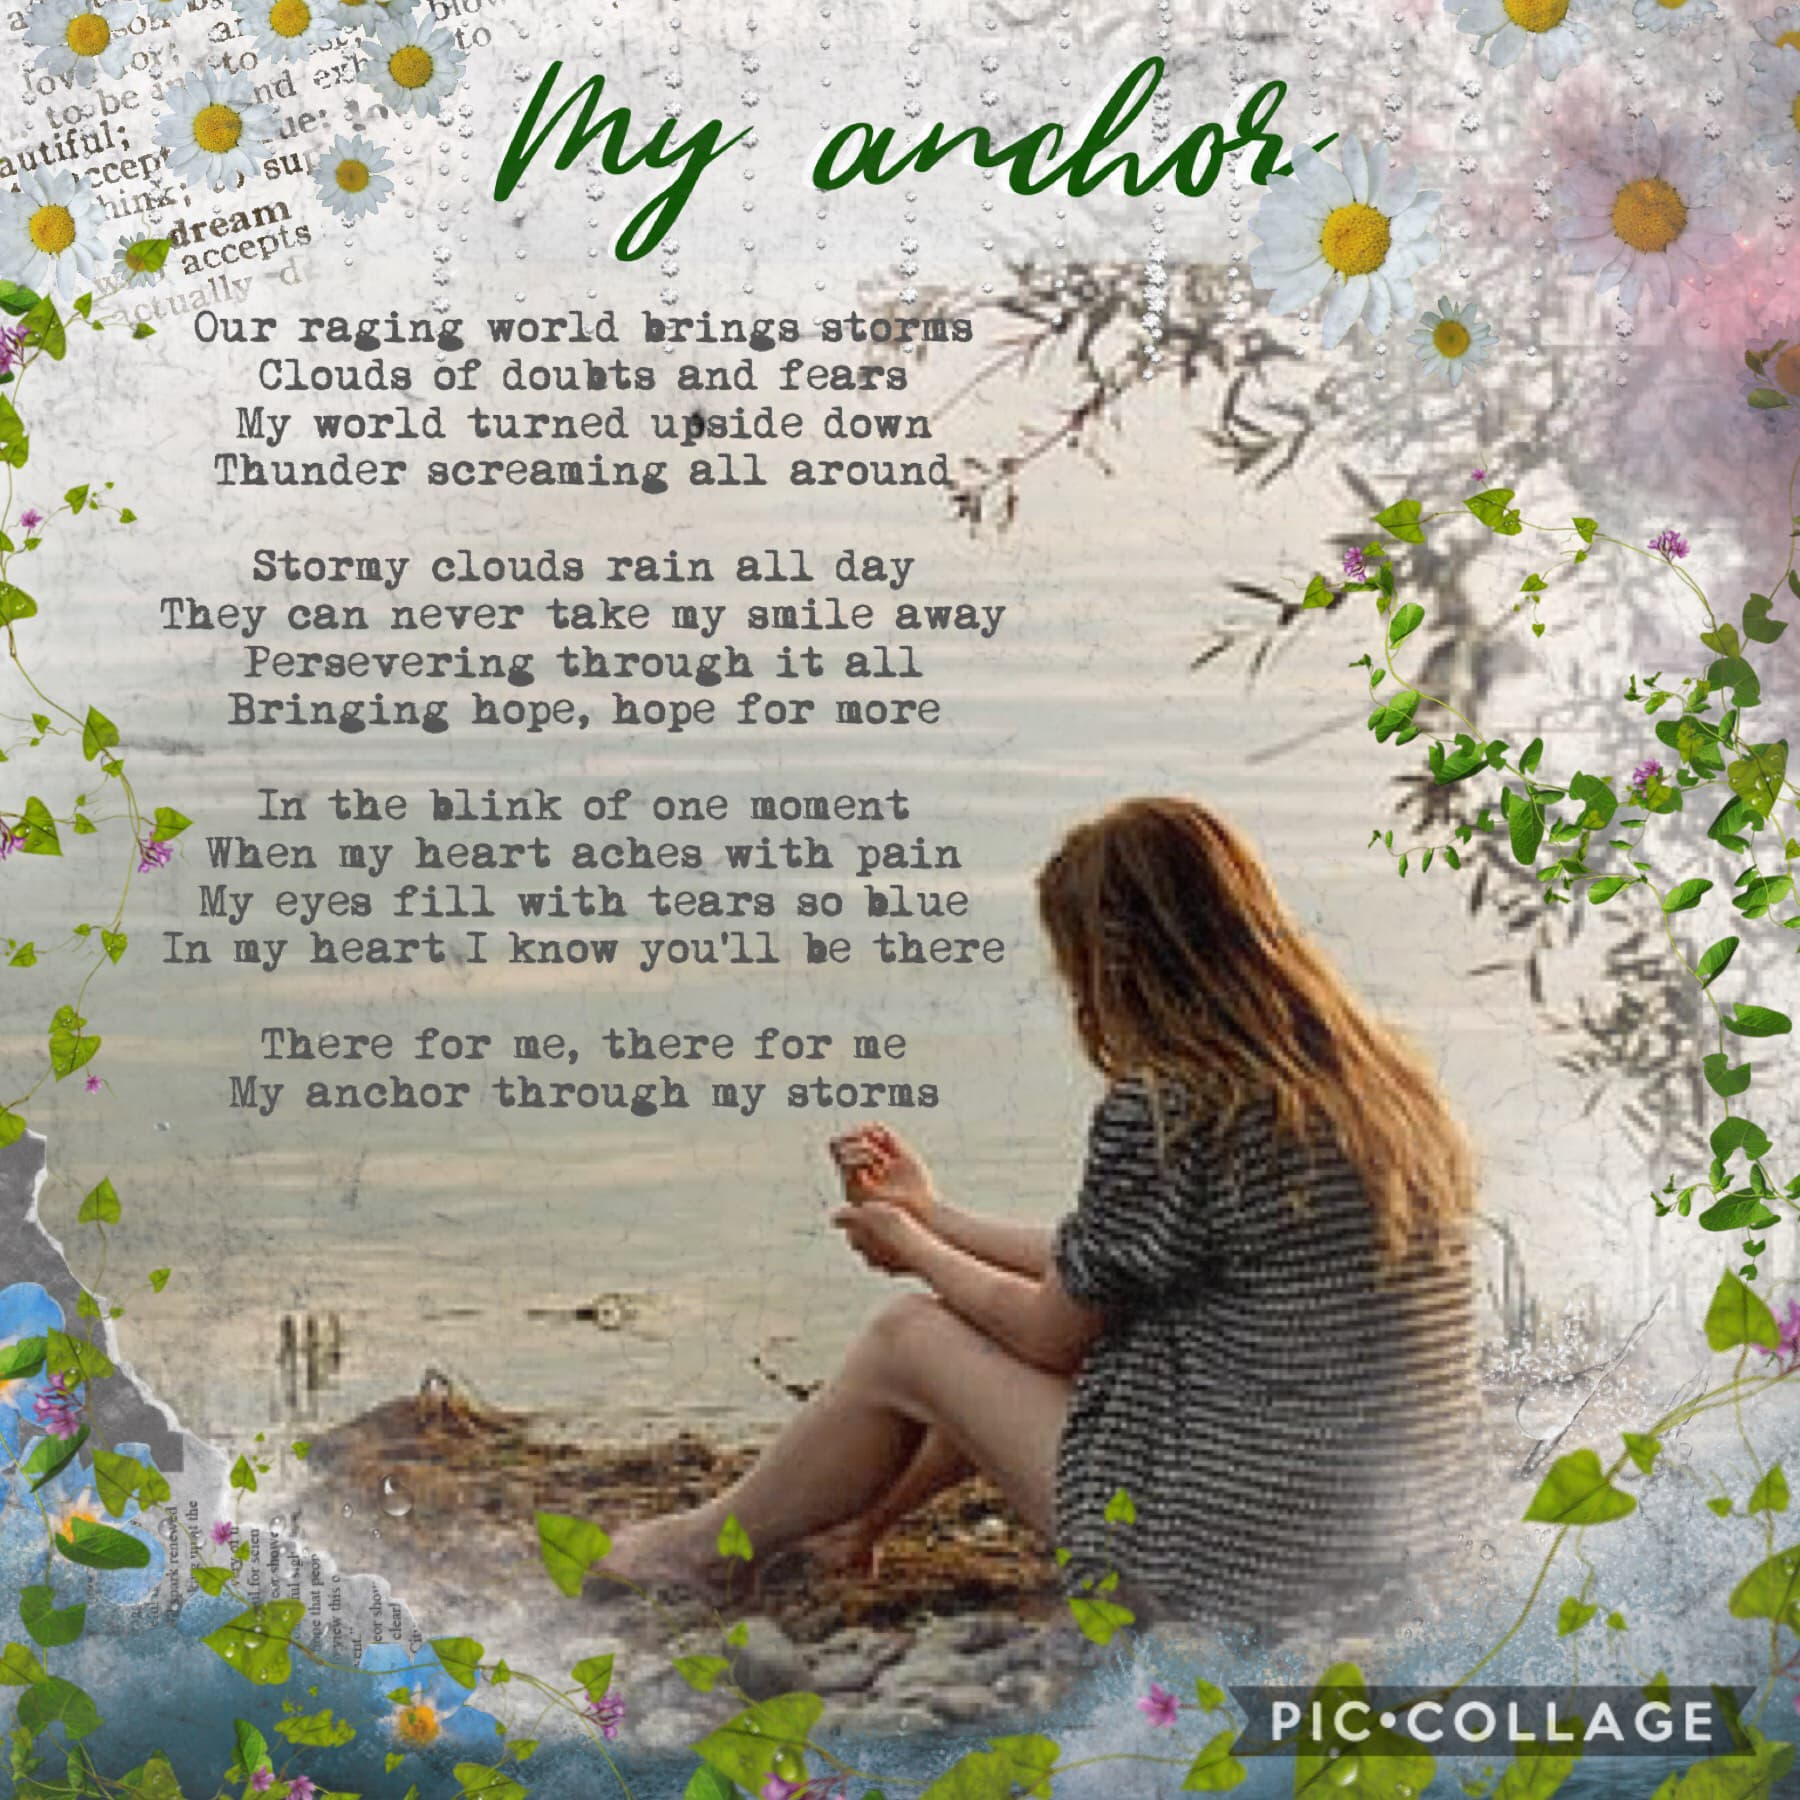 Another poem by me 🙈💗 It's really bad I know but I wrote it for my music composition. 🙈💗I actually really enjoy composing, I'm doing a song atm 🎶more collages on the way just thought I'd share ❤️